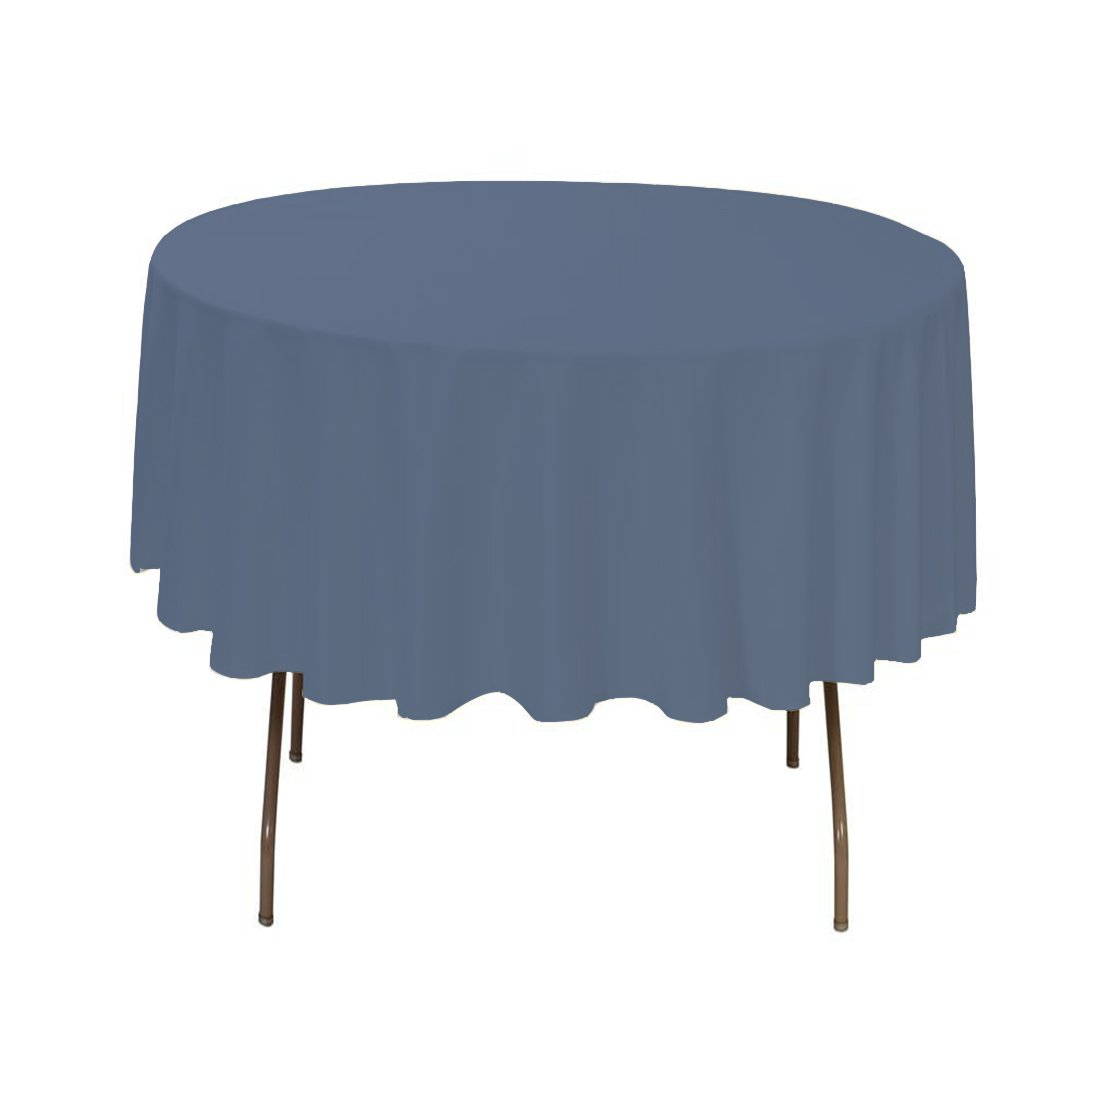 BROWARD LINENS Small Tablecloth Polyester Round 36 Inch Steel Blue By